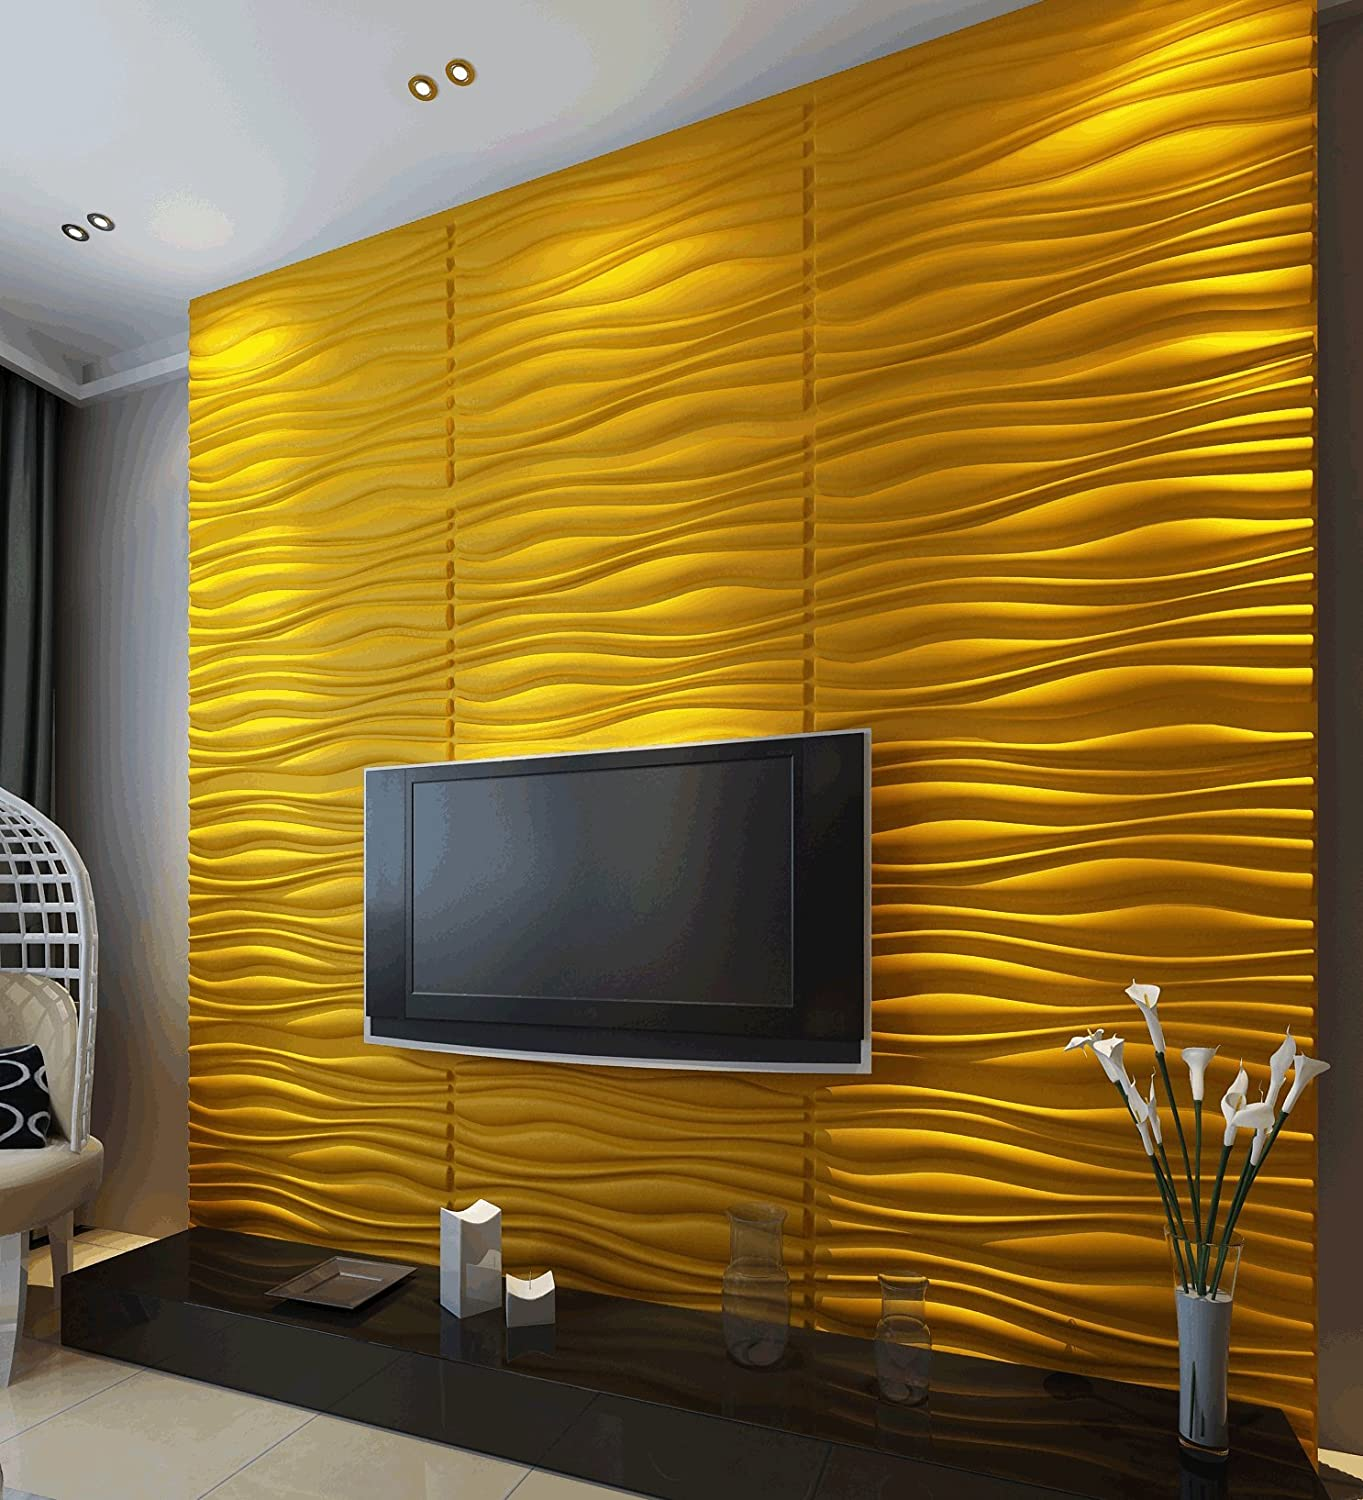 Attractive 3d Decorative Wall Panels Uk Festooning - The Wall Art ...